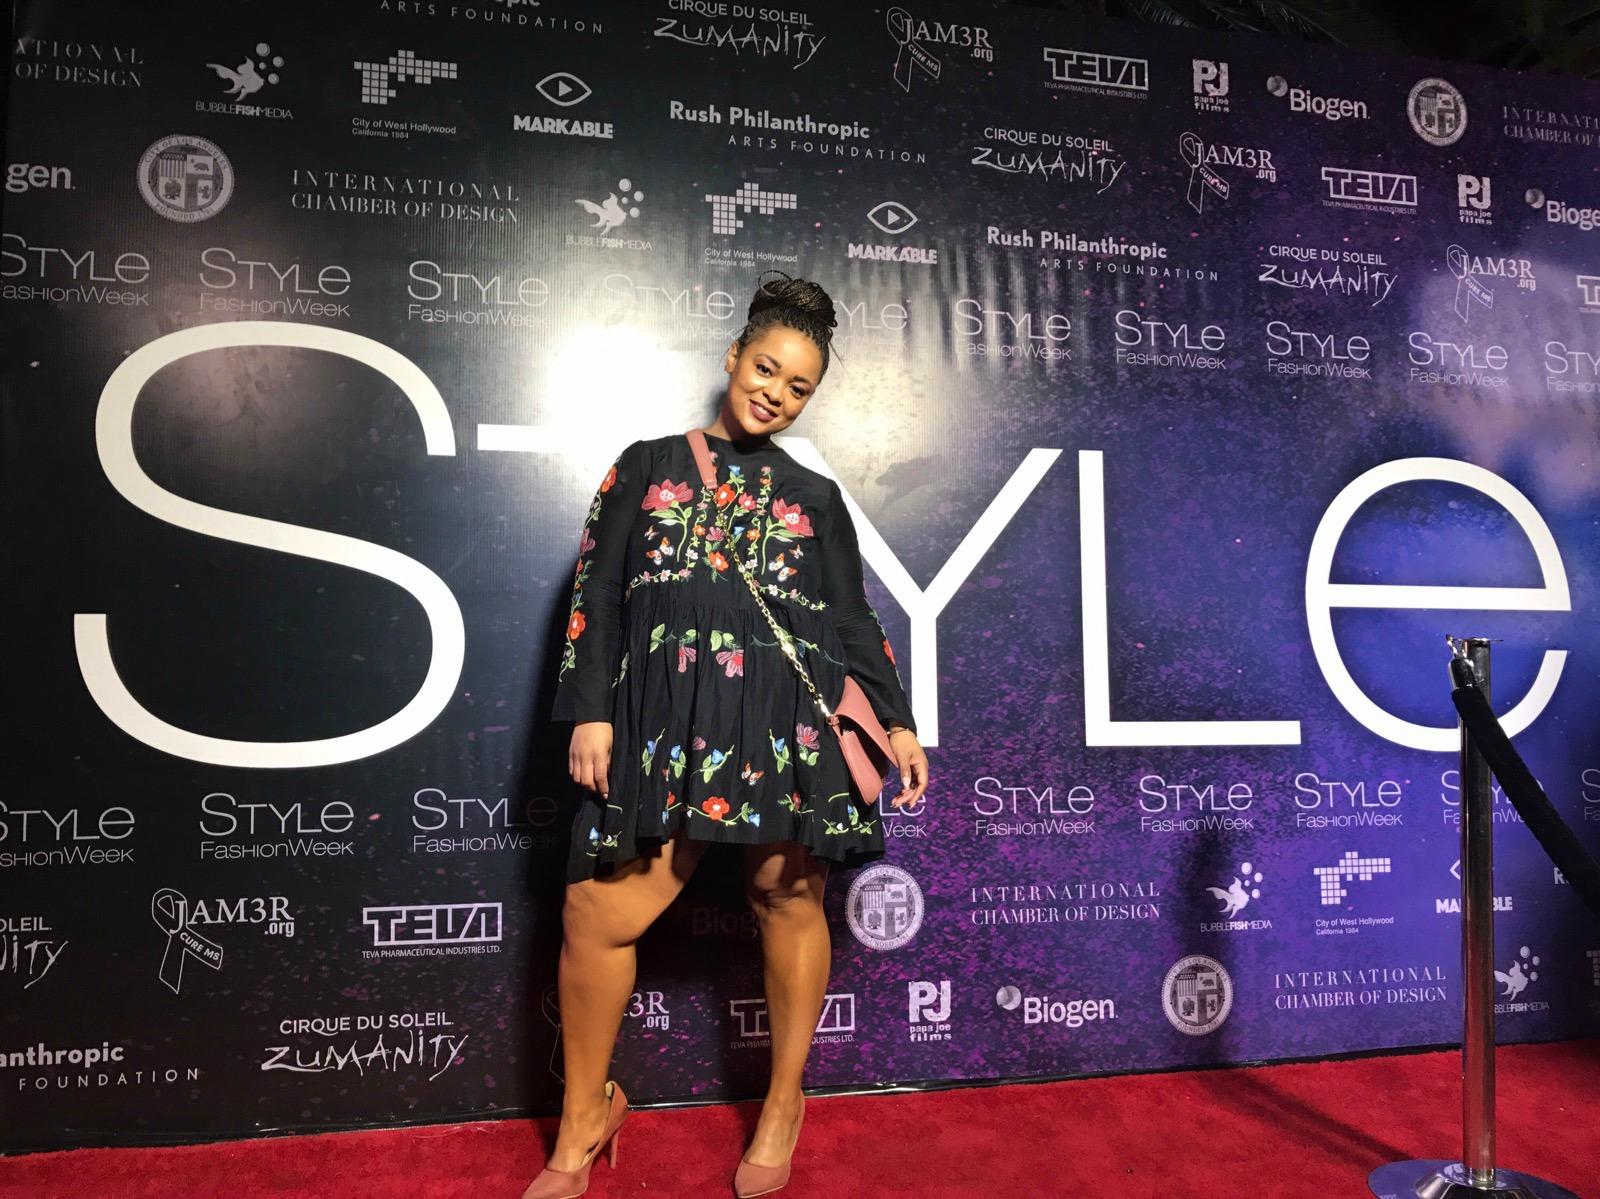 Style awards look